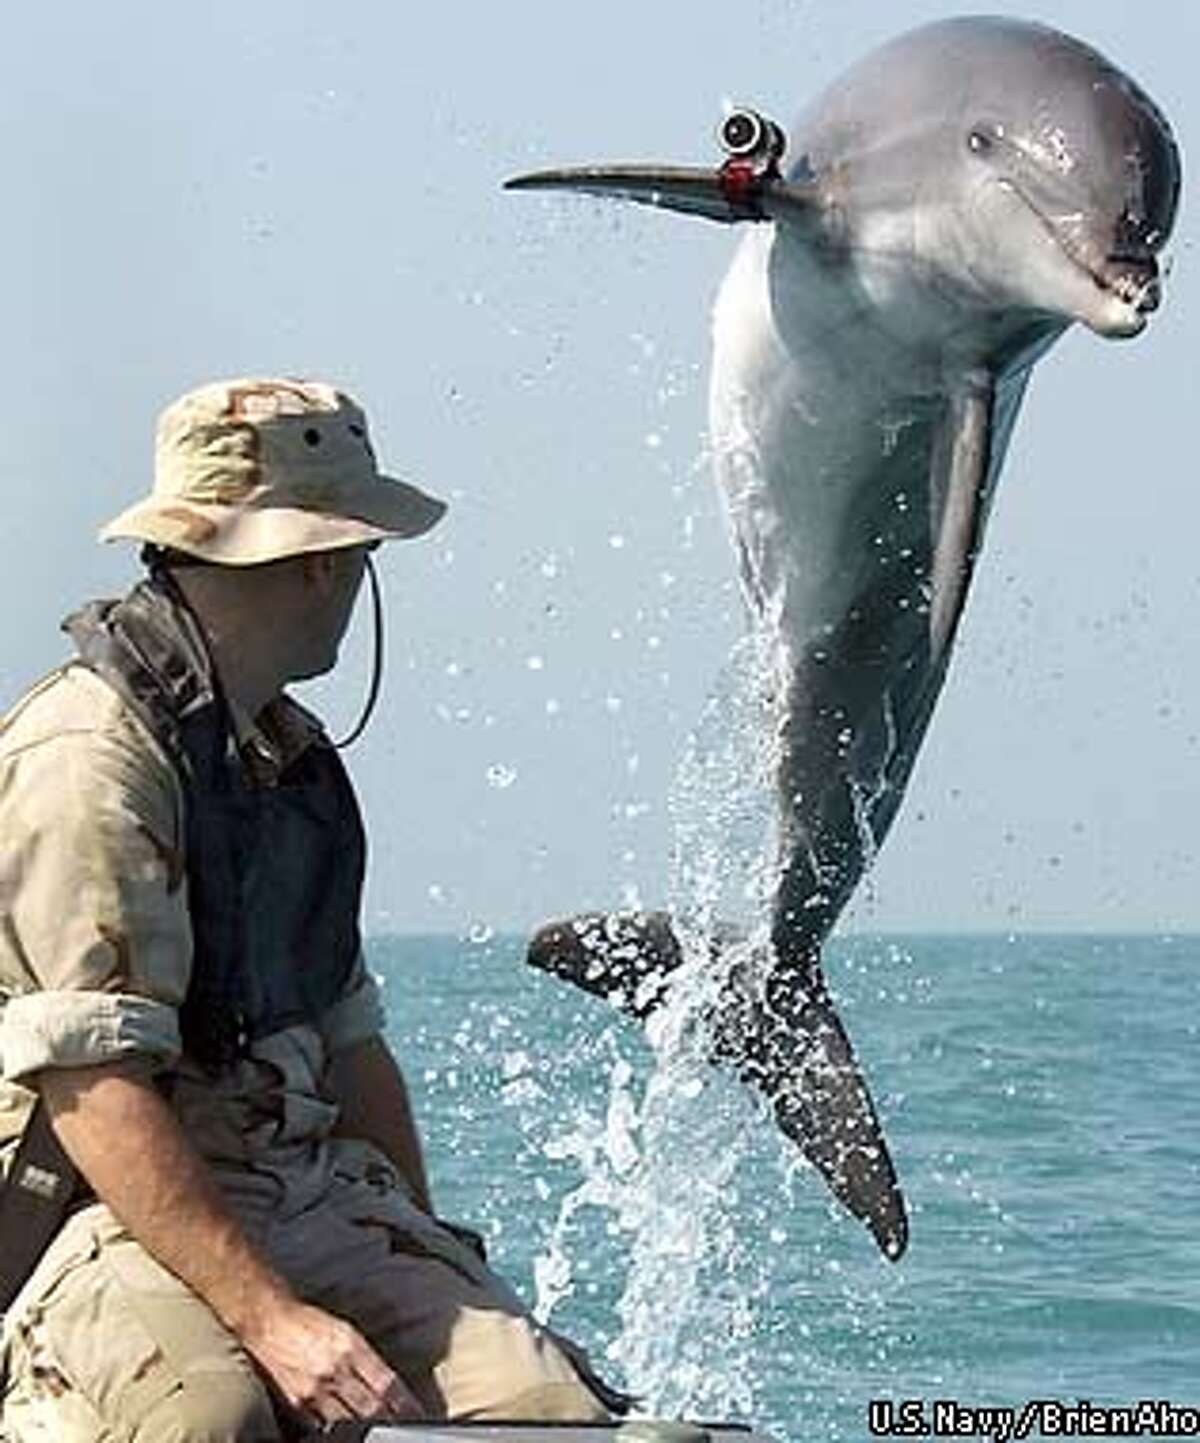 In this handout photo from the U.S. Navy, Sergeant Andrew Garrett watches K-Dog, a bottle nose dolphin attached to Commander Task Unit 55.4.3 leaps out of the water while training near the USS Gunston Hall in the Persian Gulf on March 18, 2003. Commander Task Unit 55.4.3 is a multinational team from the United States, Great Britain and Australia conducting deep/shallow water mine clearing operations to clear shipping lanes for humanitarian relief and are currently conducting missions in support of Operation Iraqi Freedom. (AP Photo/ U.S. Navy / Brien Aho, HO)